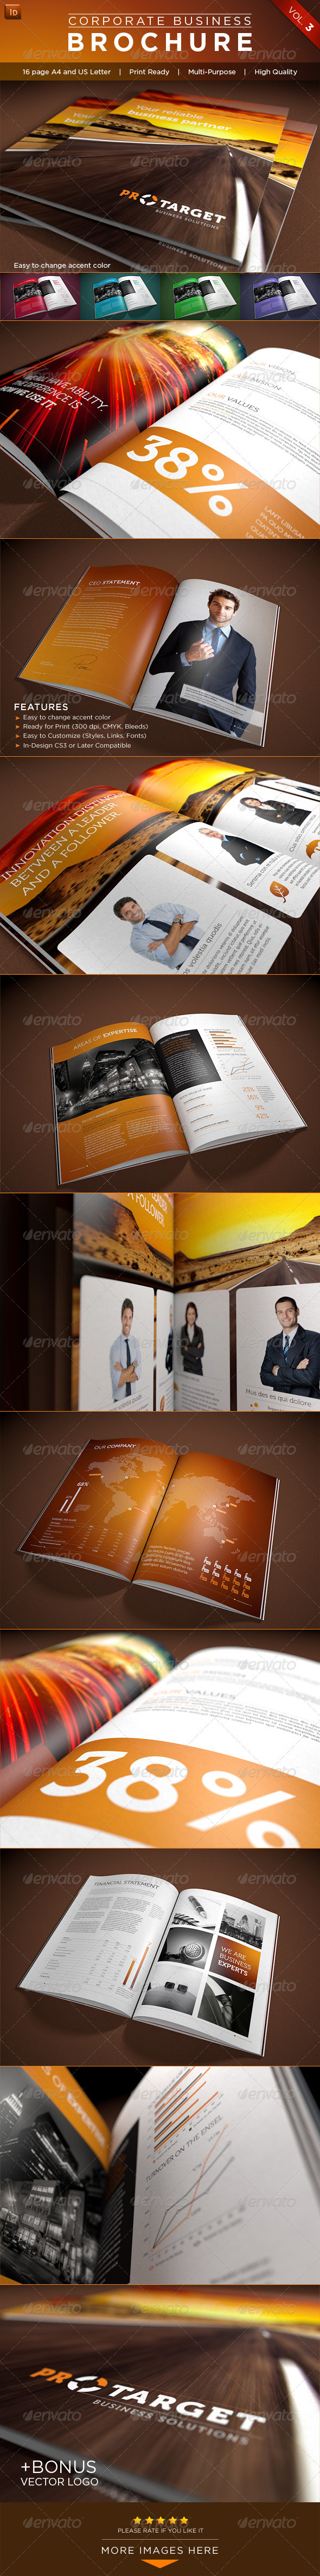 Corporate Business Brochure Vol. 3 - Brochures Print Templates